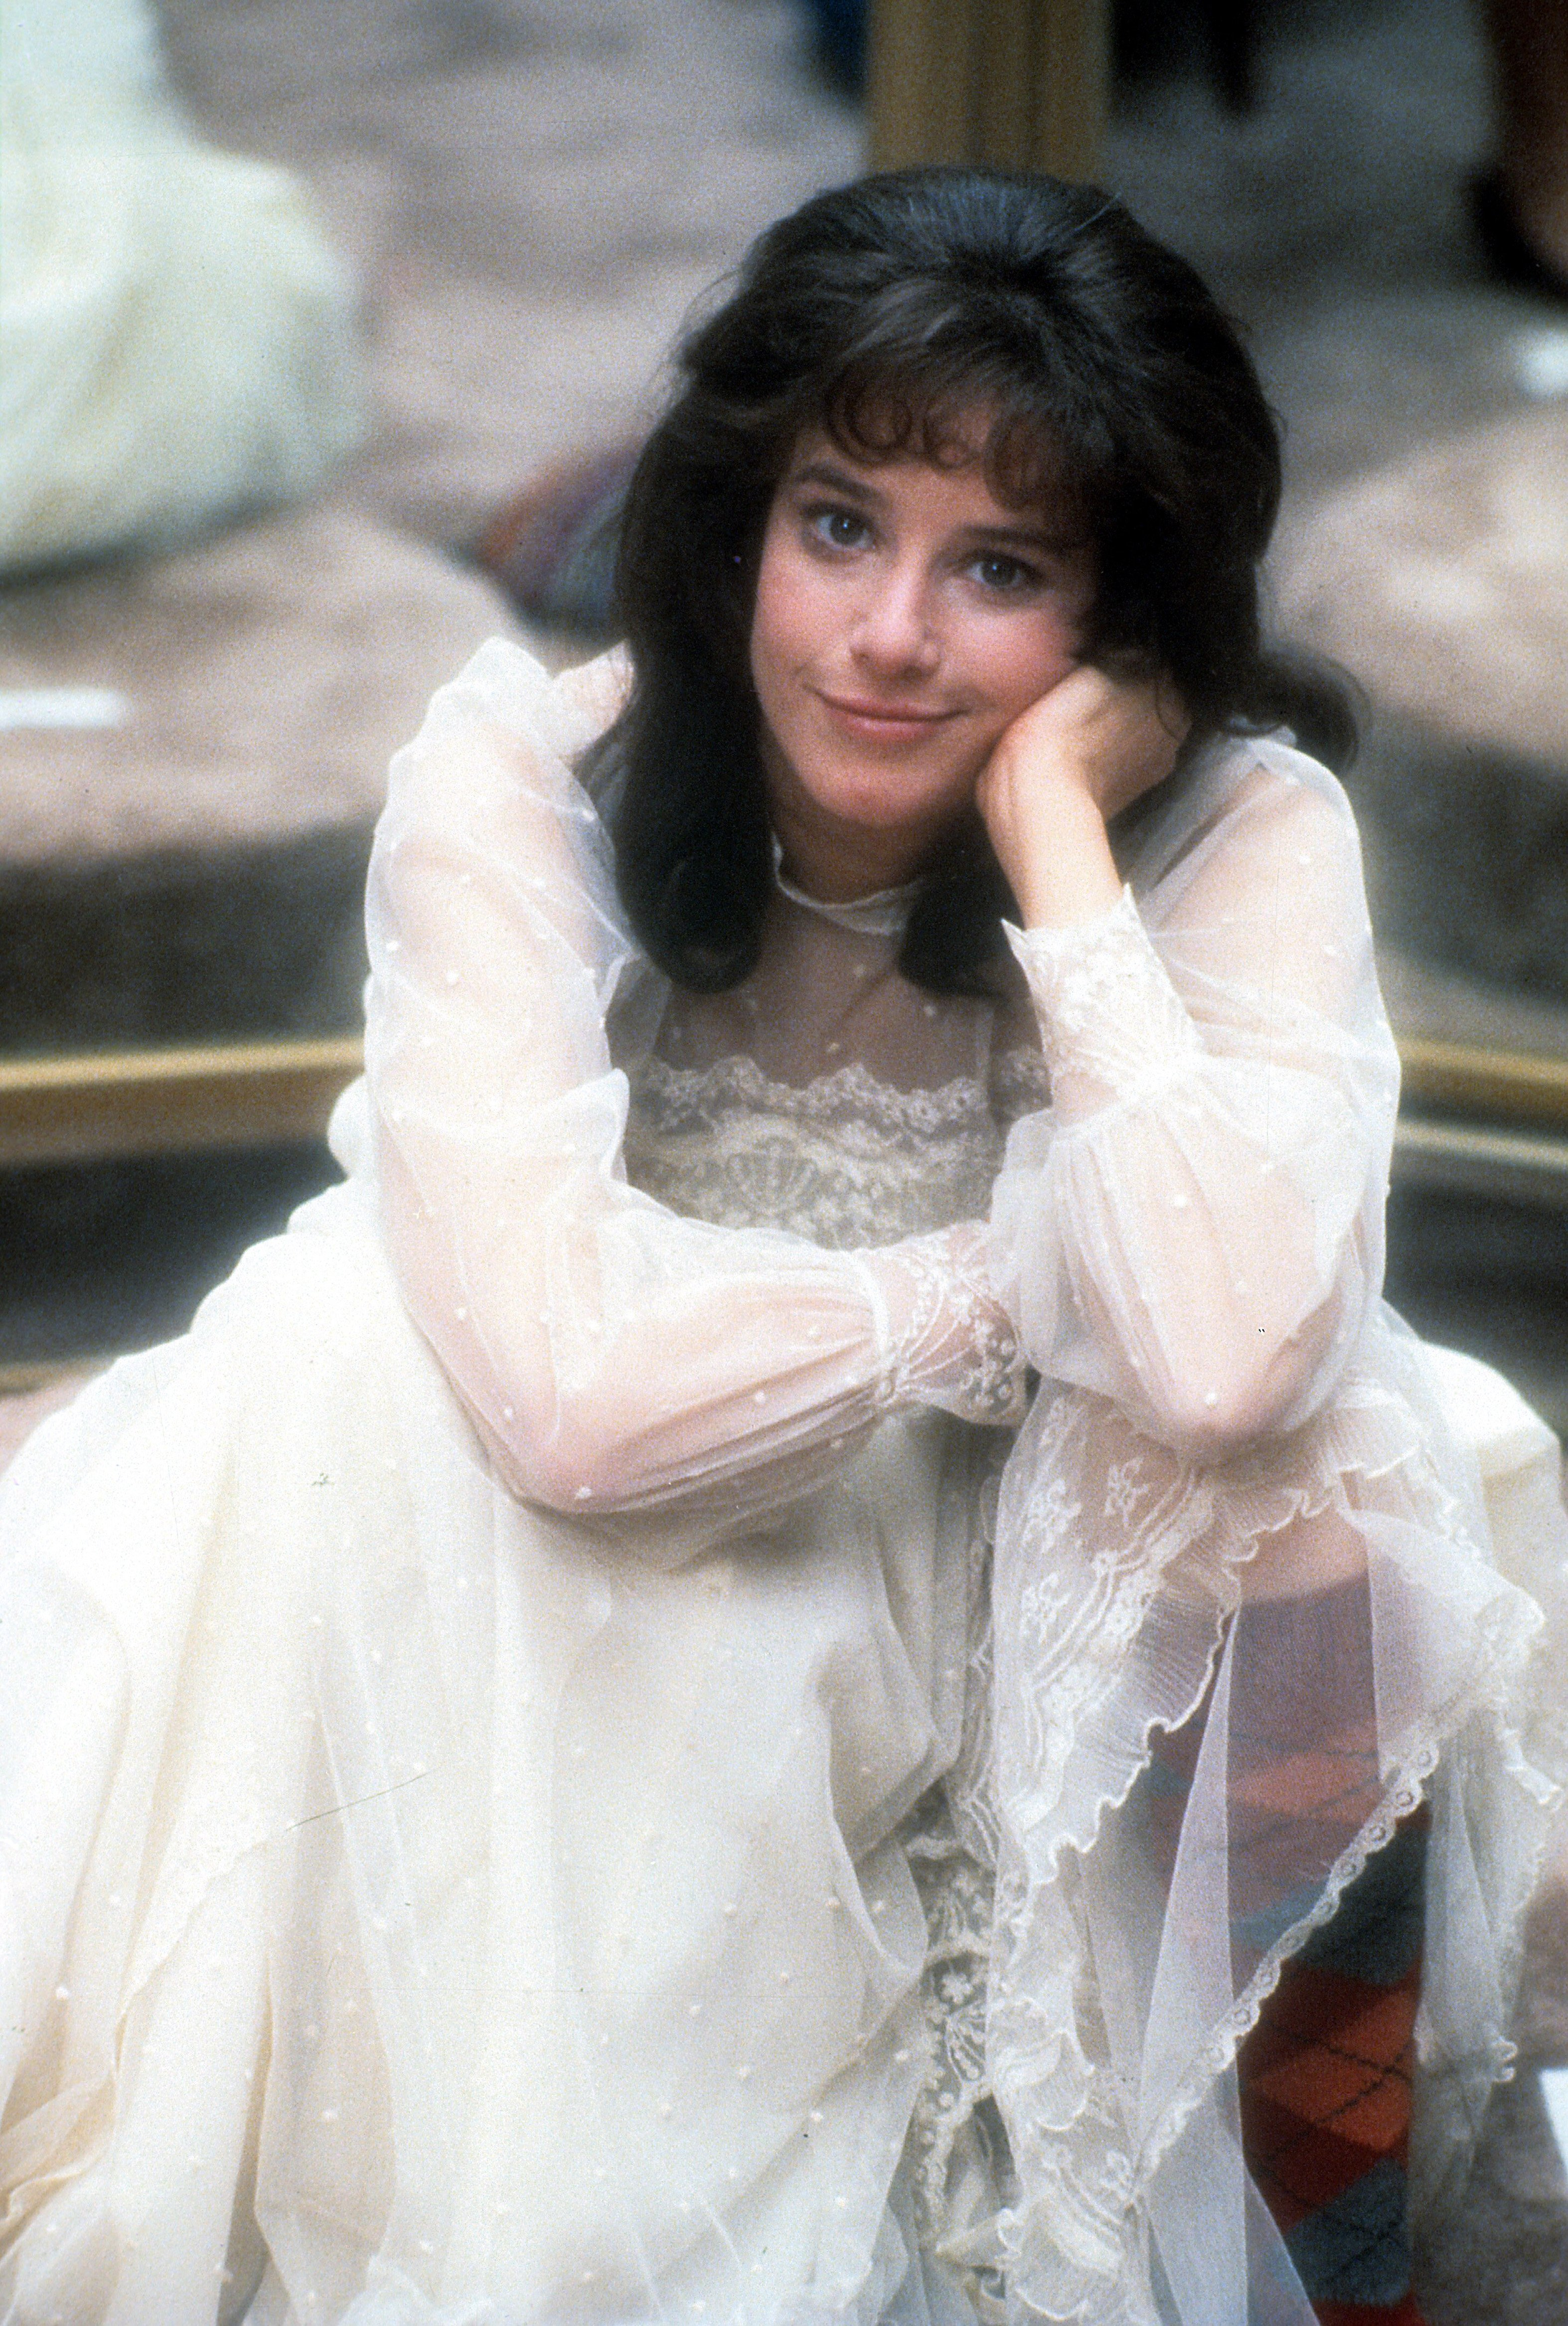 Image Credits: Getty Images / Paramount Pictures | Debra Winger in a scene from the film 'Terms of Endearment', 1983.